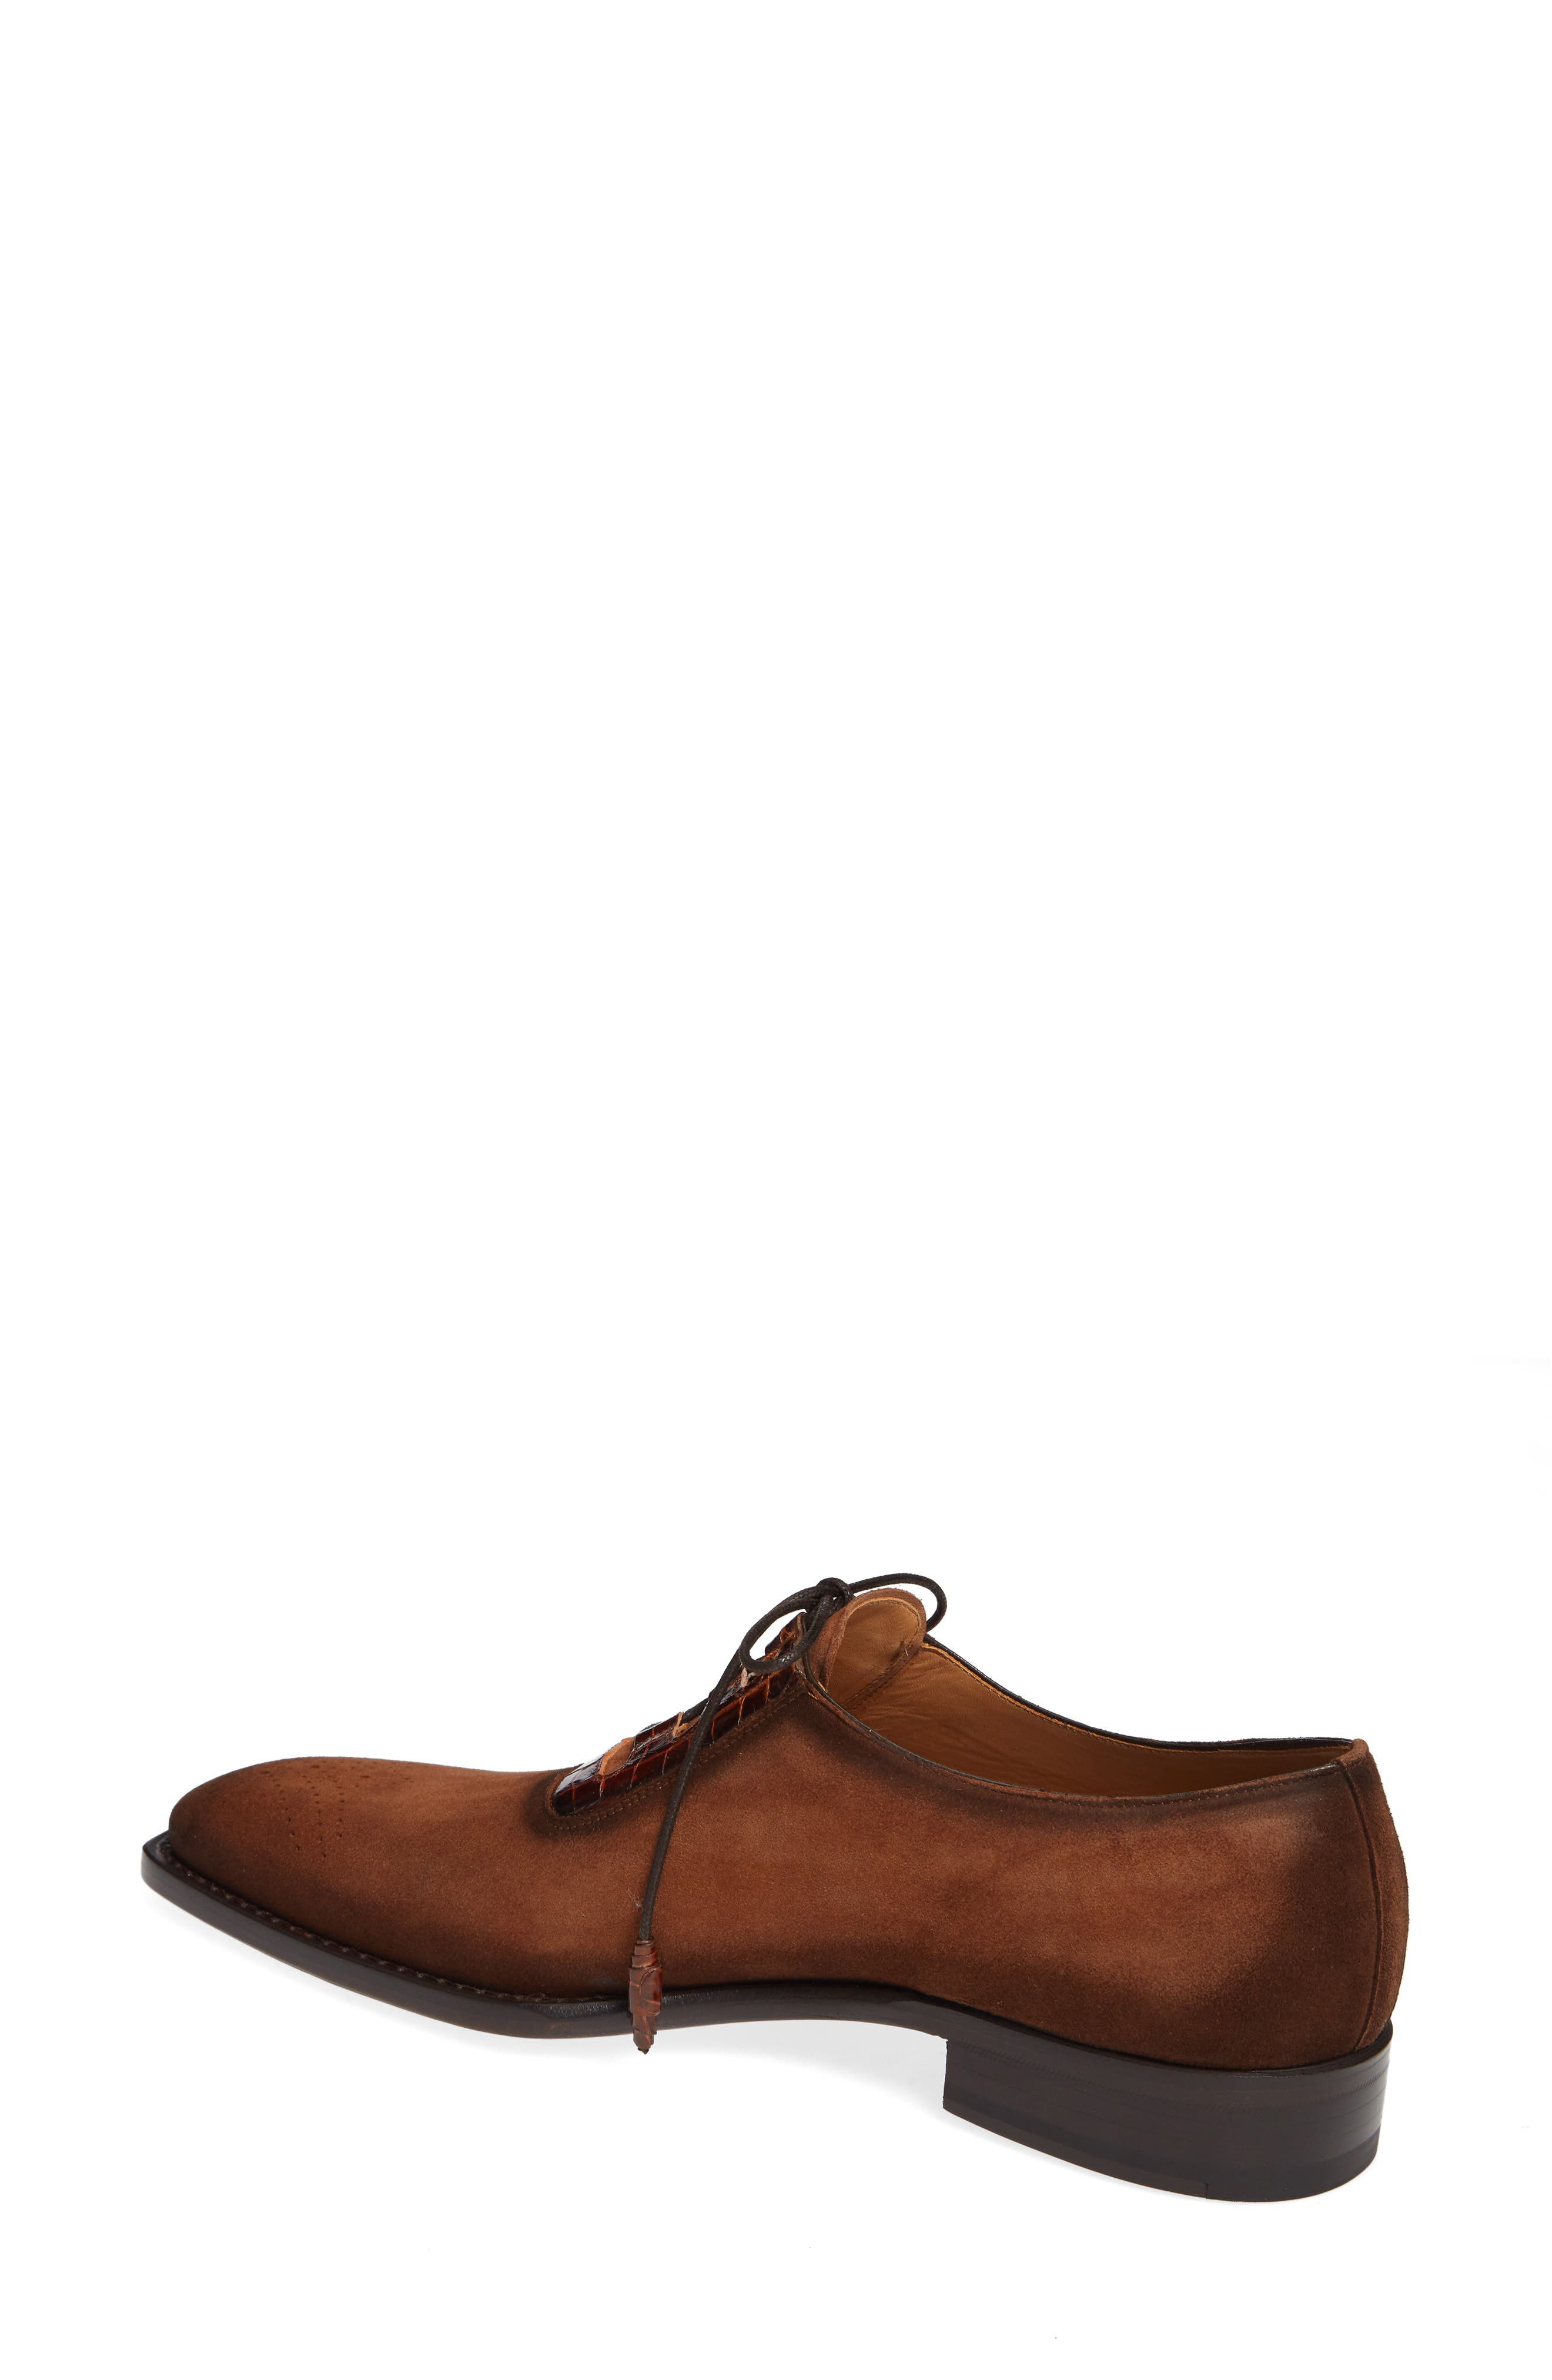 Cassel Oxford,                             Alternate thumbnail 2, color,                             COGNAC